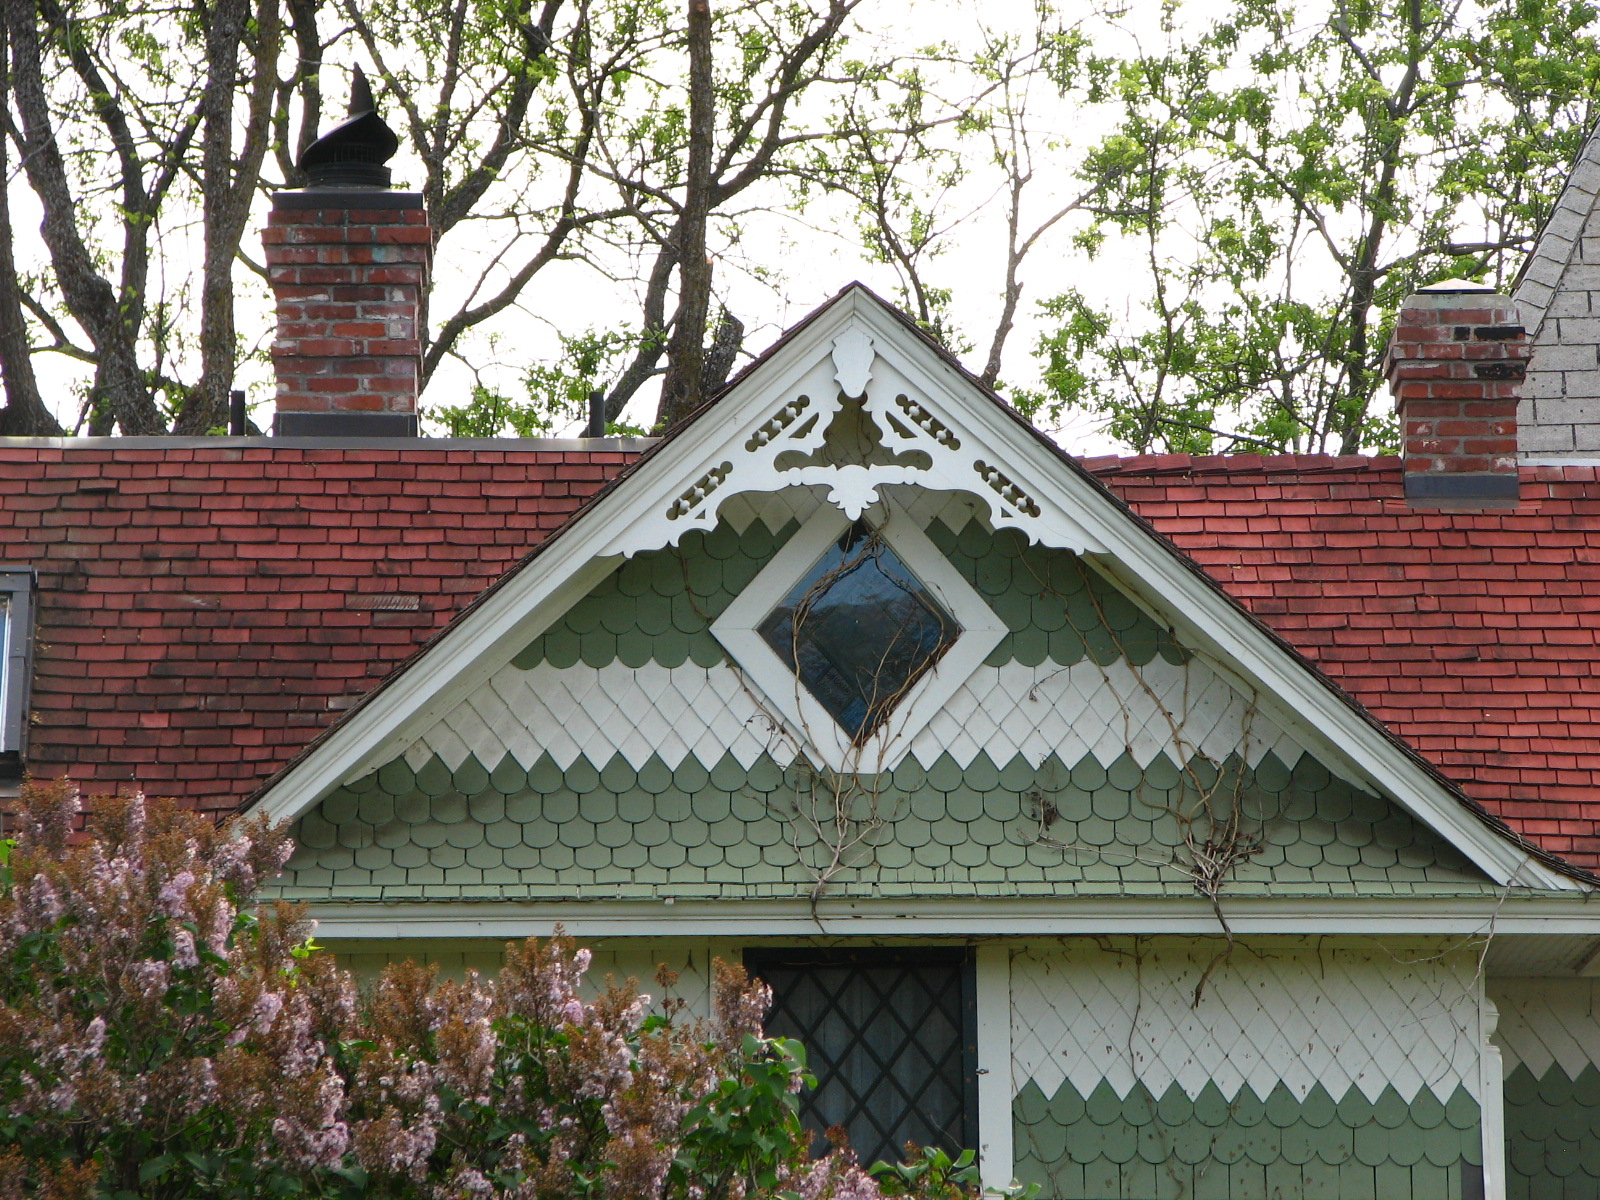 File mosier house gable detail mosier for Houses images pictures